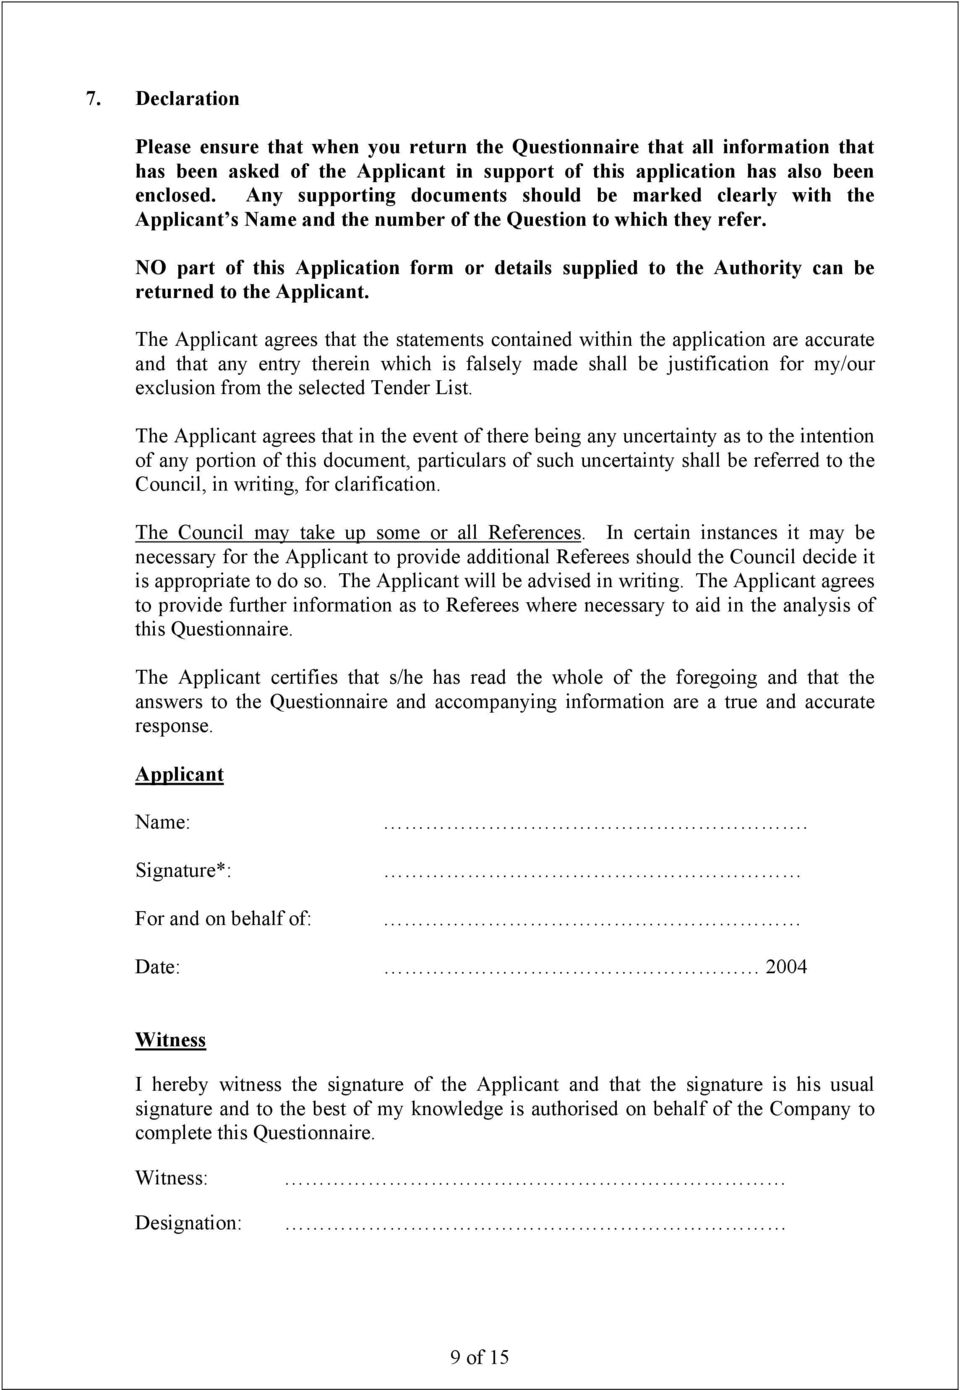 NO part of this Application form or details supplied to the Authority can be returned to the Applicant.